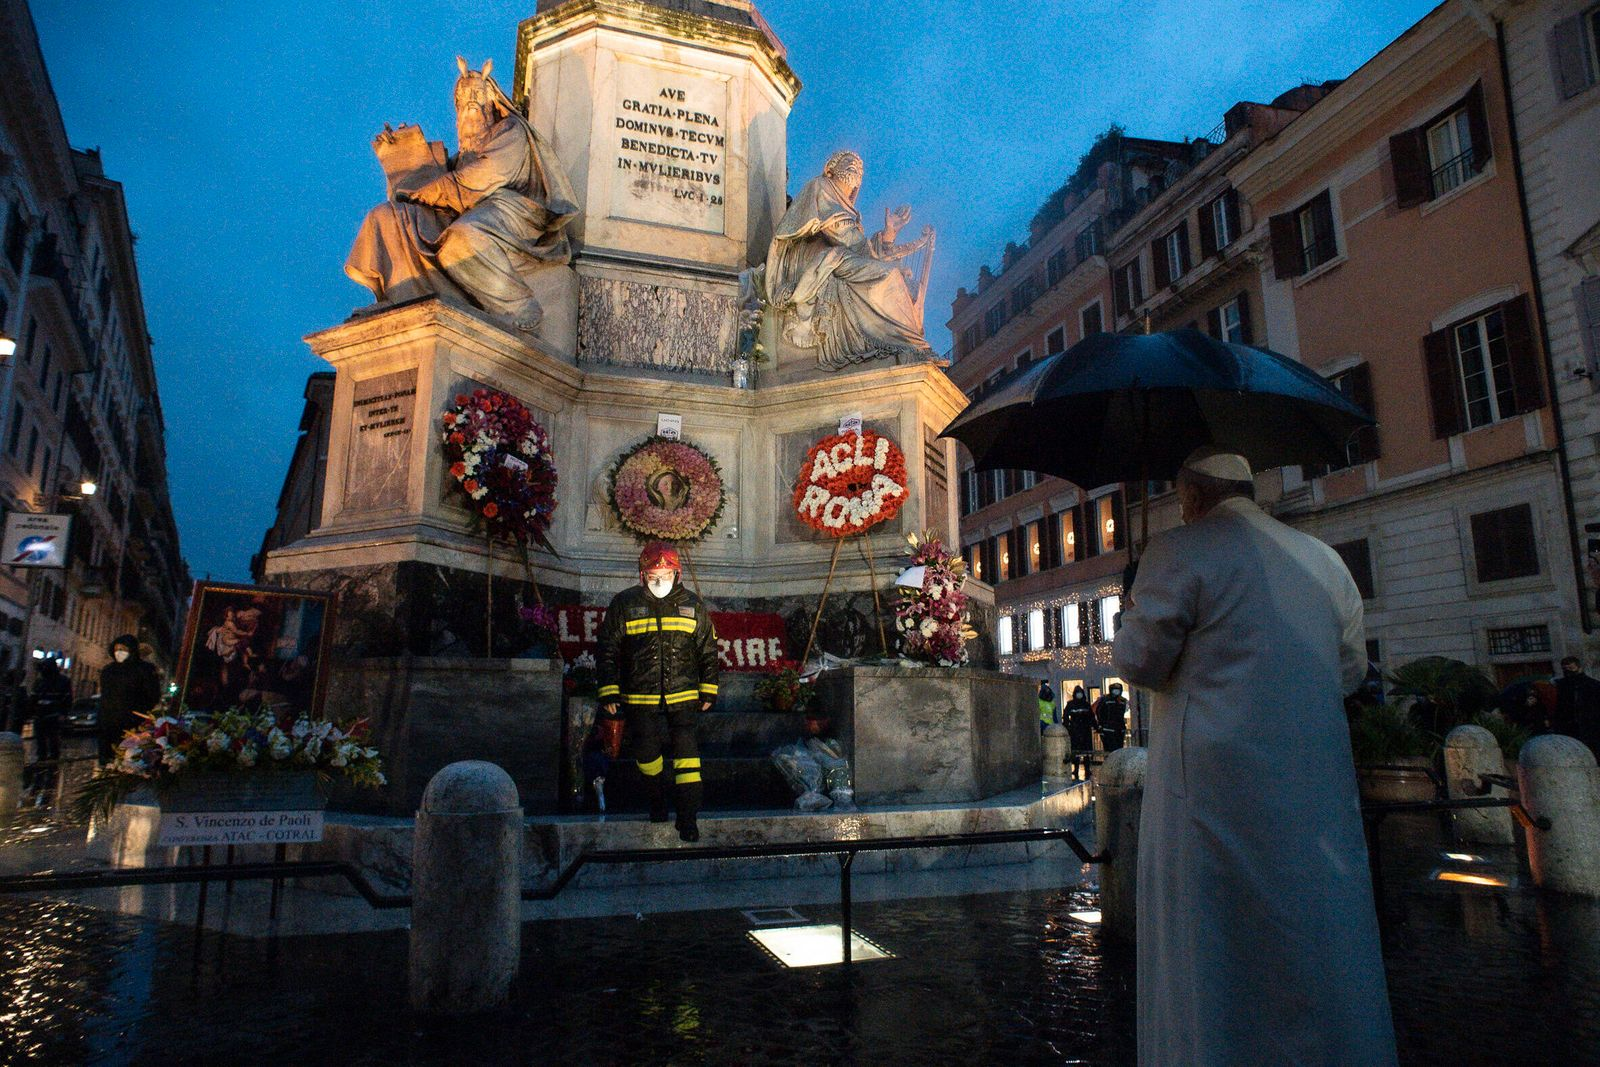 December 8, 2020: Pope Francis leads the Immaculate Conception celebration prayer in Piazza di Spagna (Spain s Square)